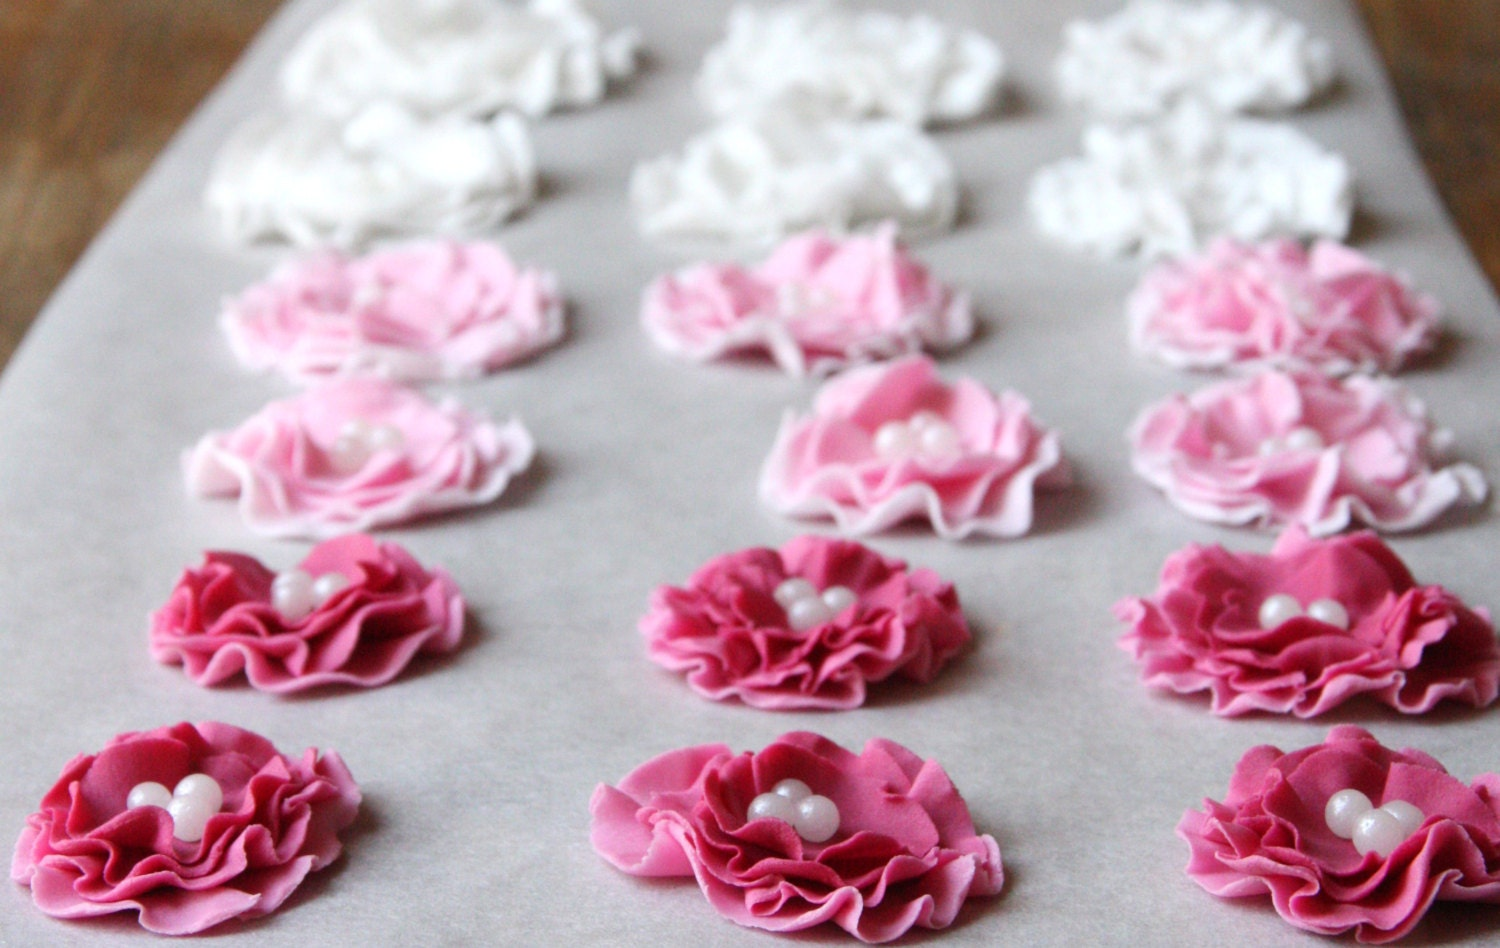 Edible Cake Decoration Flowers : Flower cake or cupcake topper edible wedding cake decoration